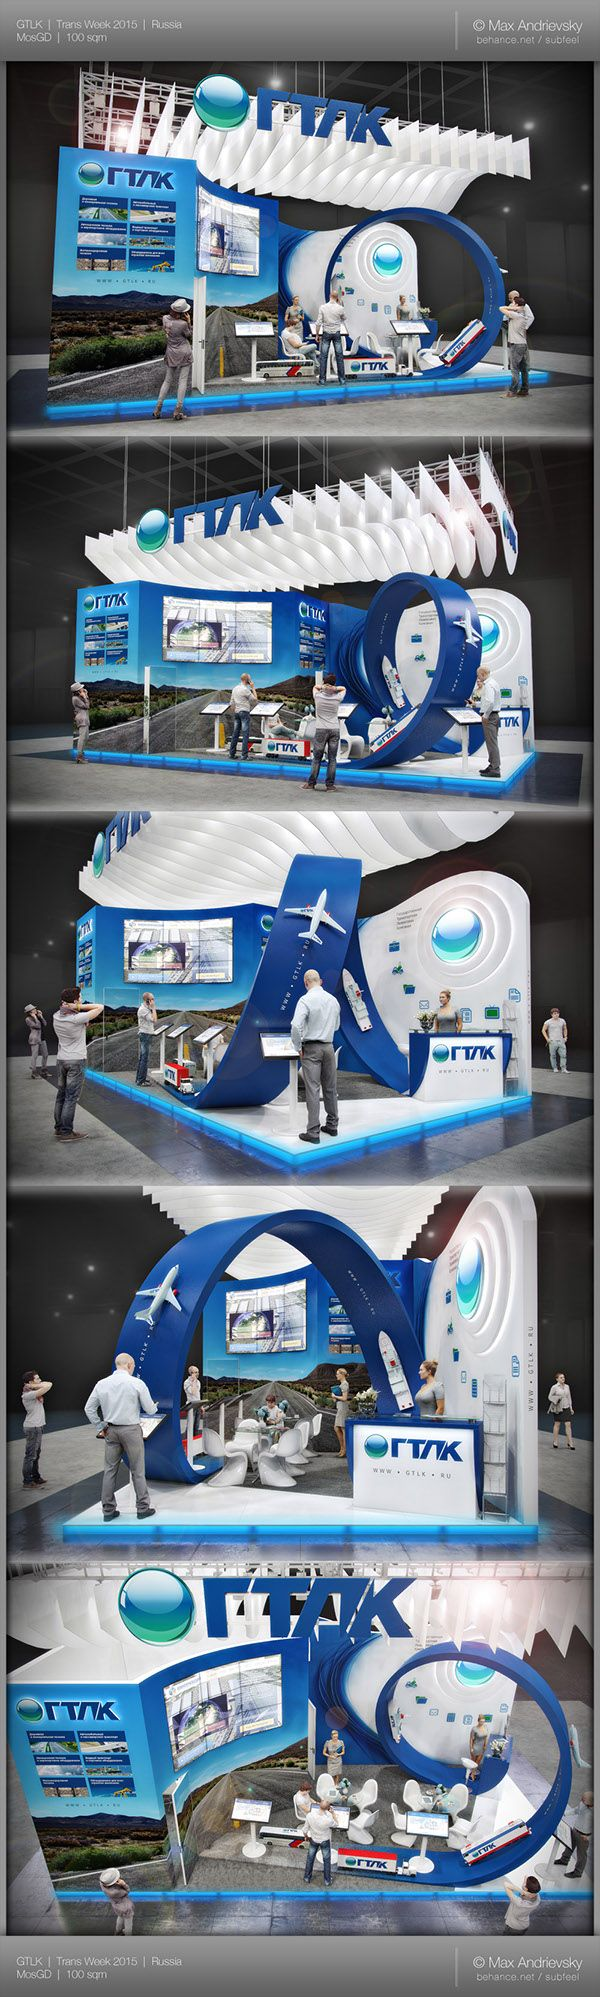 Exhibition Stand Russia : Best ideas about exhibition booth on pinterest